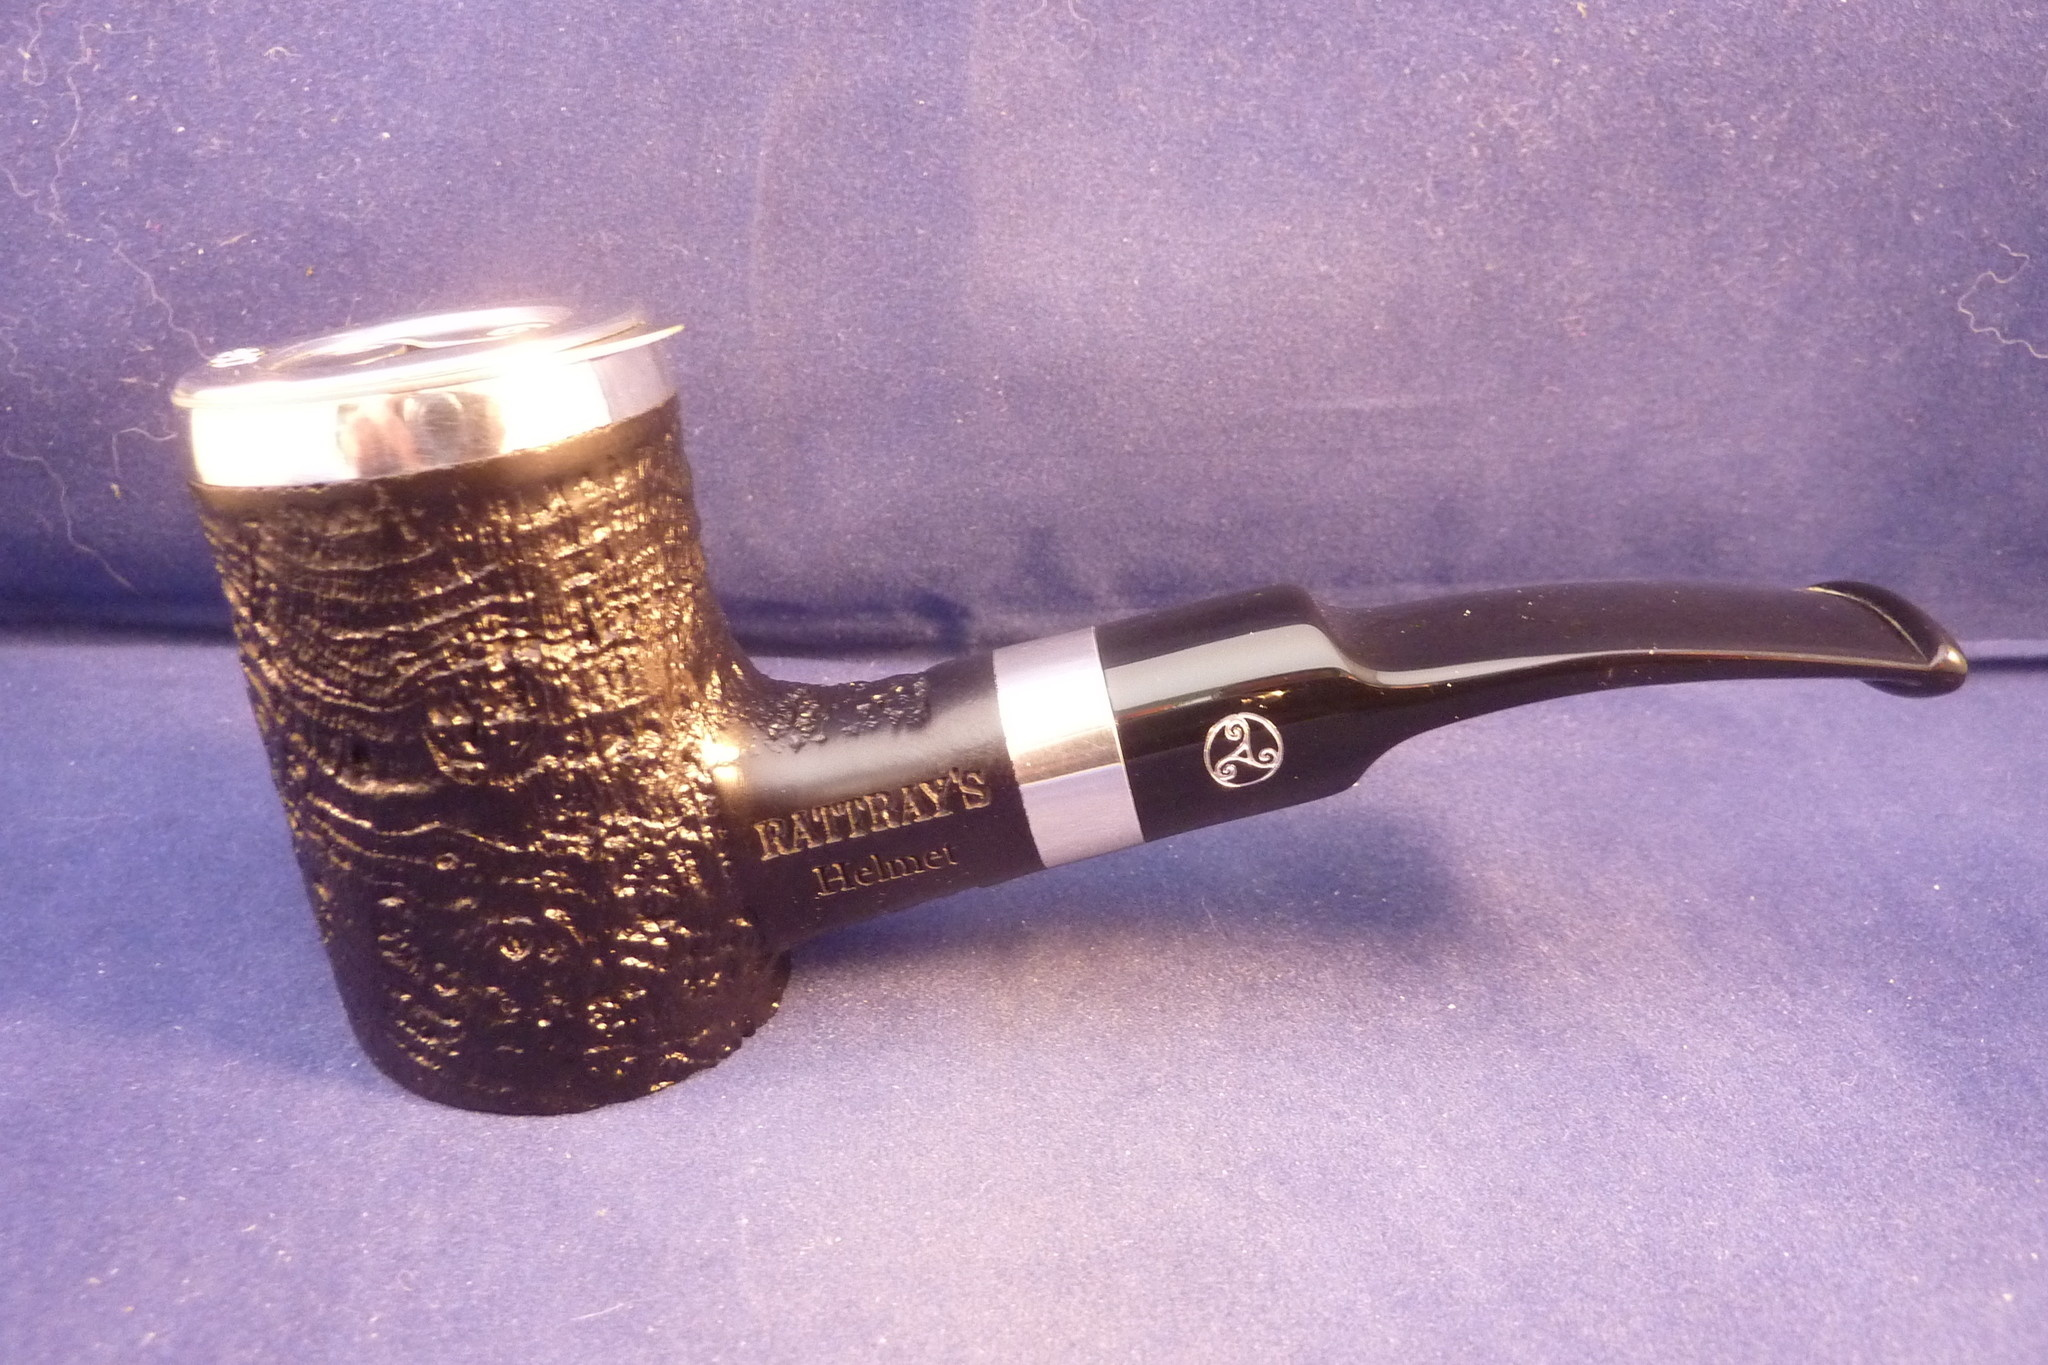 Sold Smoking Pipe Rattray's Helmet Sand 138